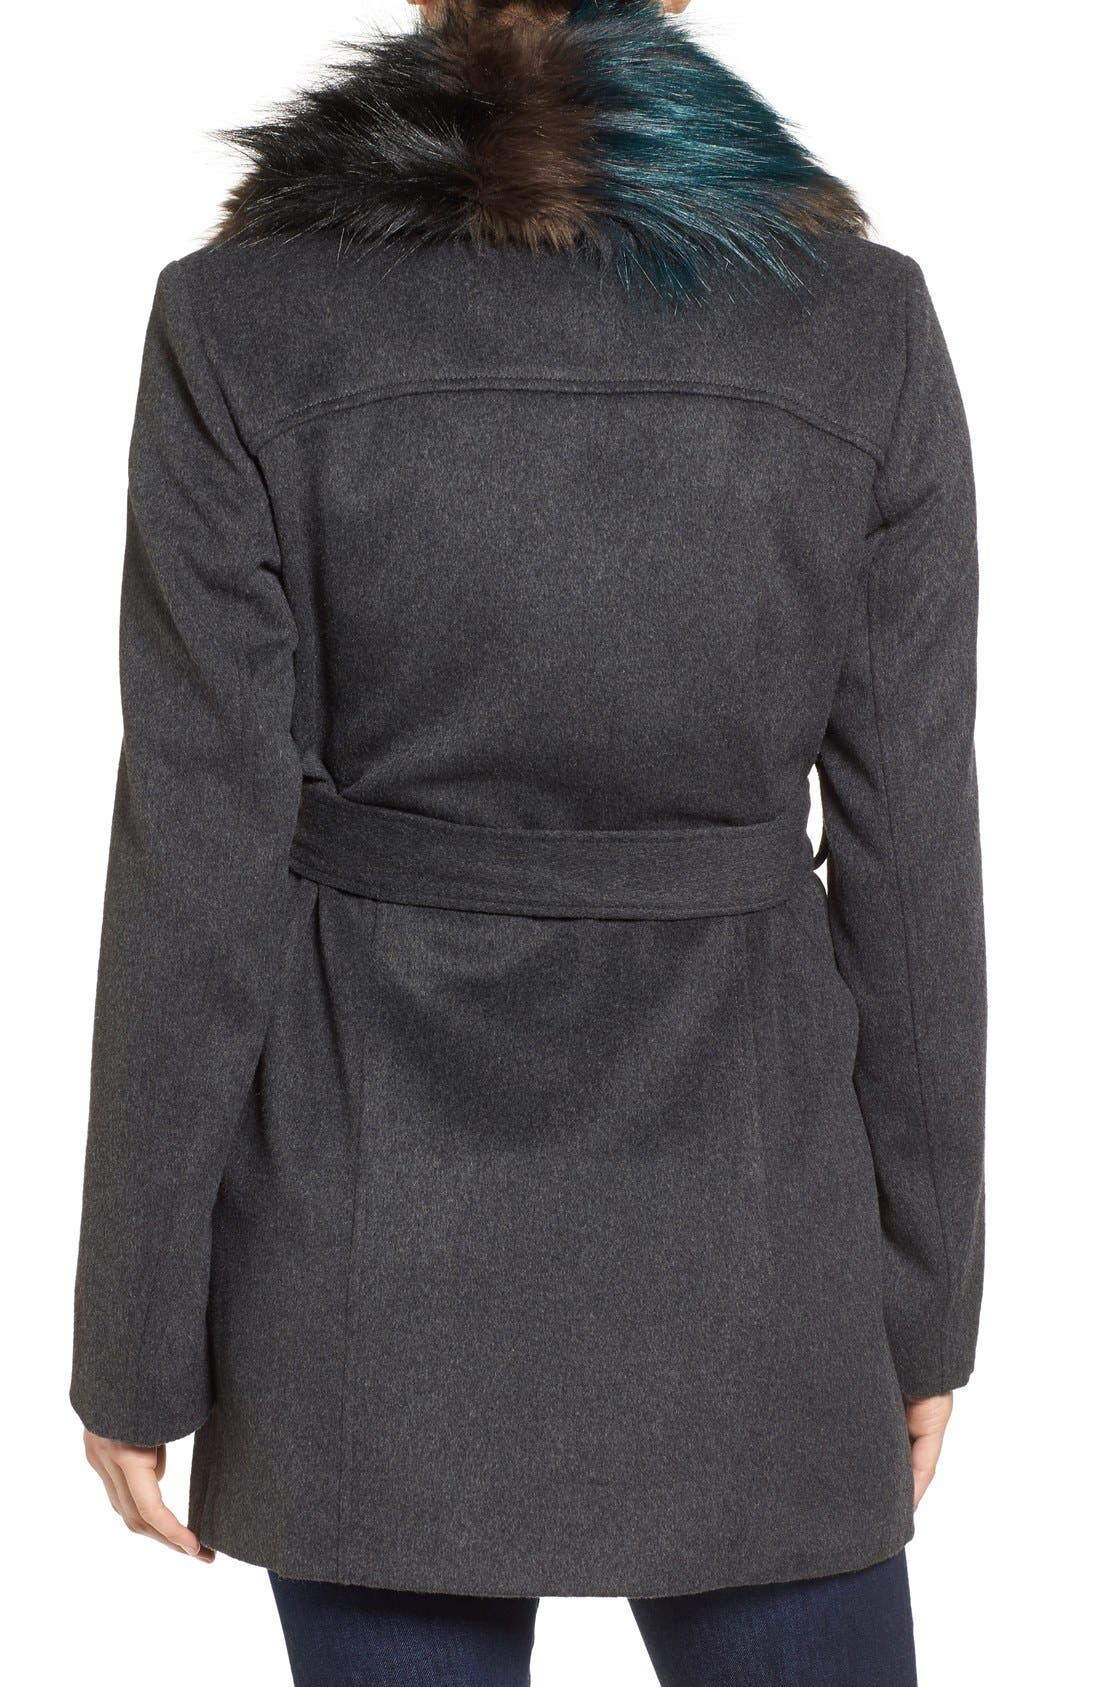 Alternate Image 2  - Sam Edelman Wool Coat with Removable Faux Fur Collar